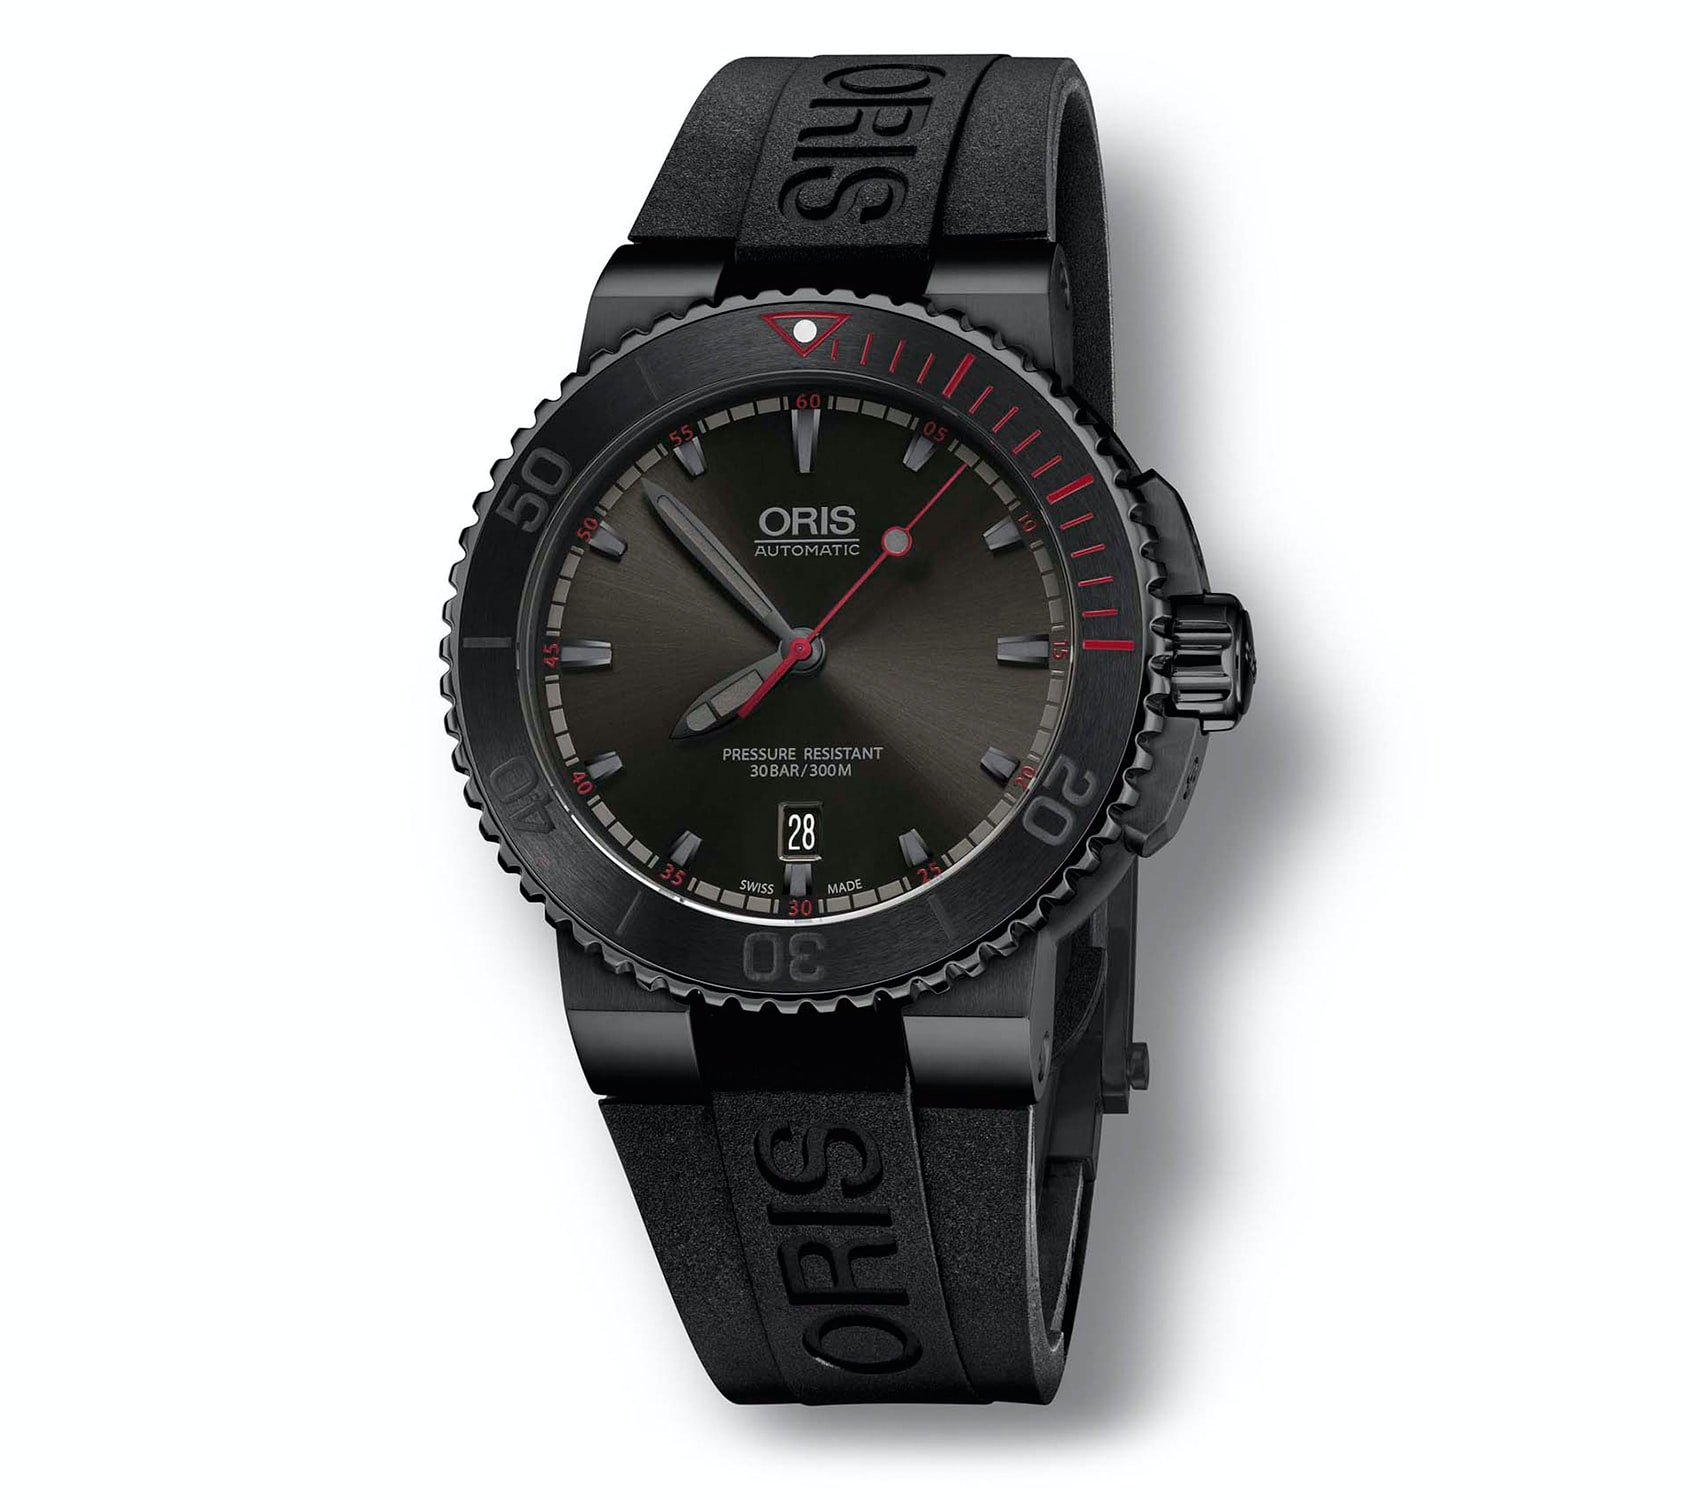 Oris El Hierro Limited Edition watch Introducing: Three New Divers From Oris – One Heritage Update, And Two Limited Editions Supporting Good Causes Introducing: Three New Divers From Oris – One Heritage Update, And Two Limited Editions Supporting Good Causes vcvc